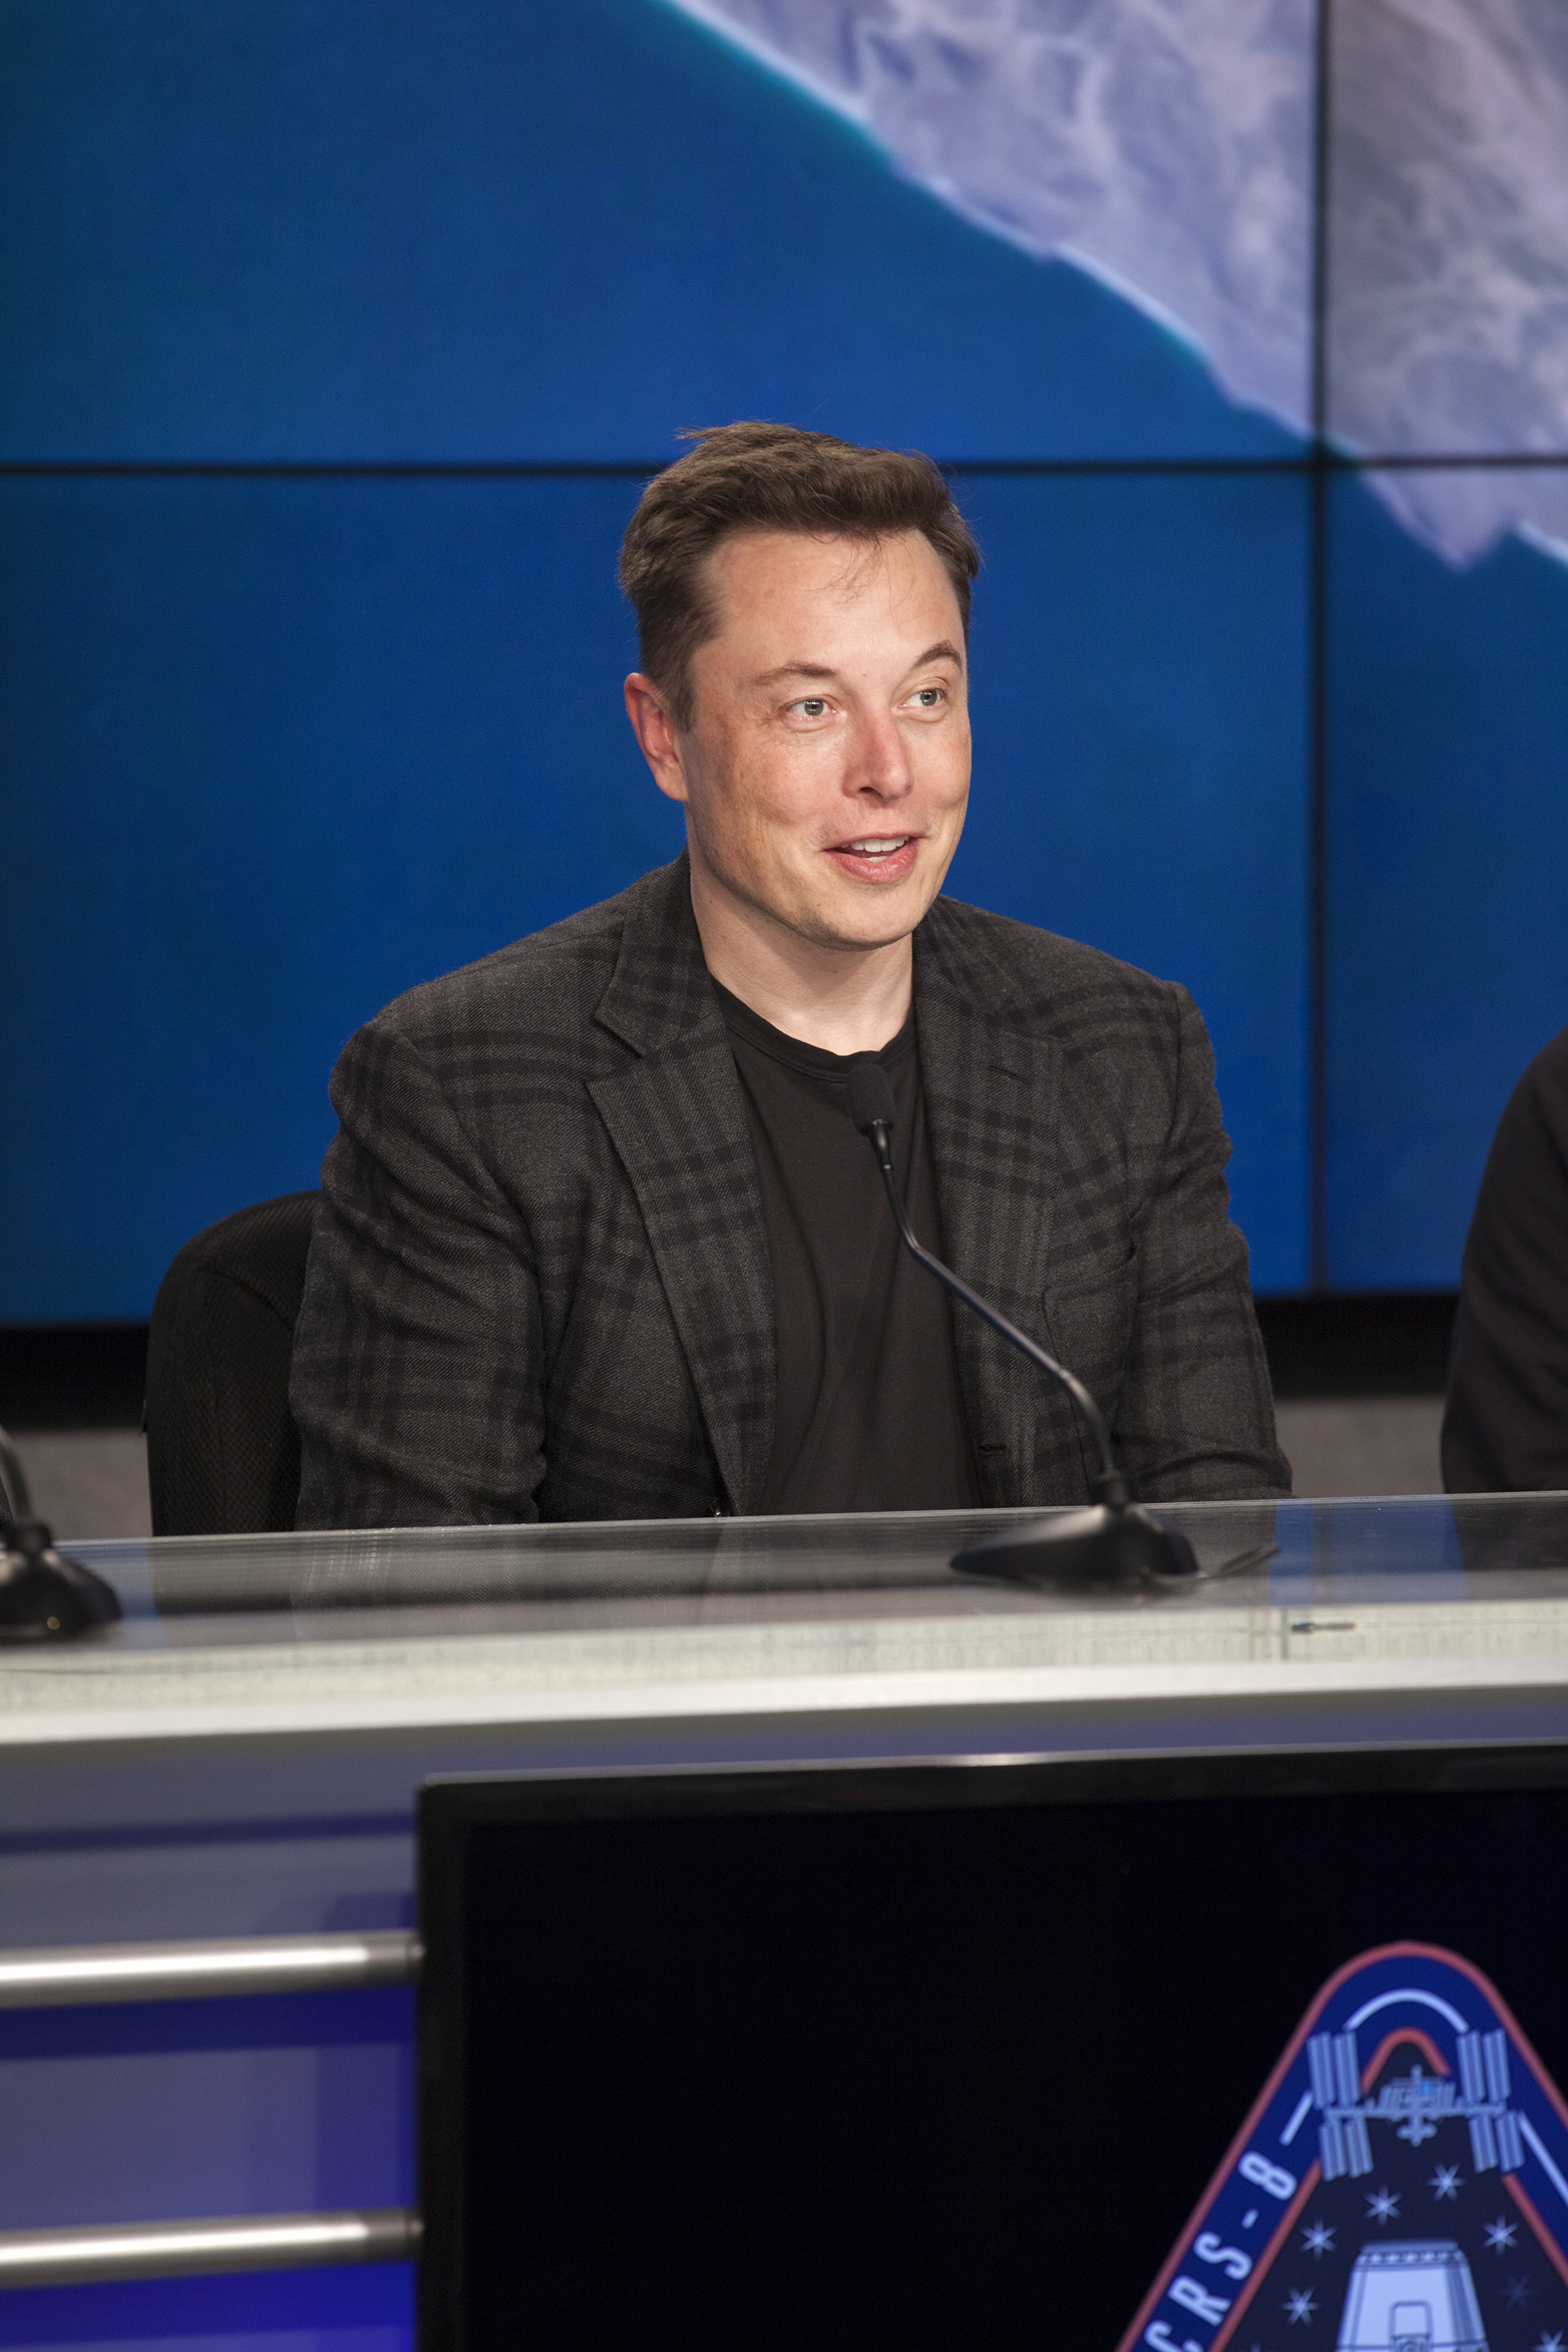 Photos of the Post Launch Press Conference after a successful launch of SpaceX CRS-8 and successful landing of the Falcon 9 rocket on the barge.